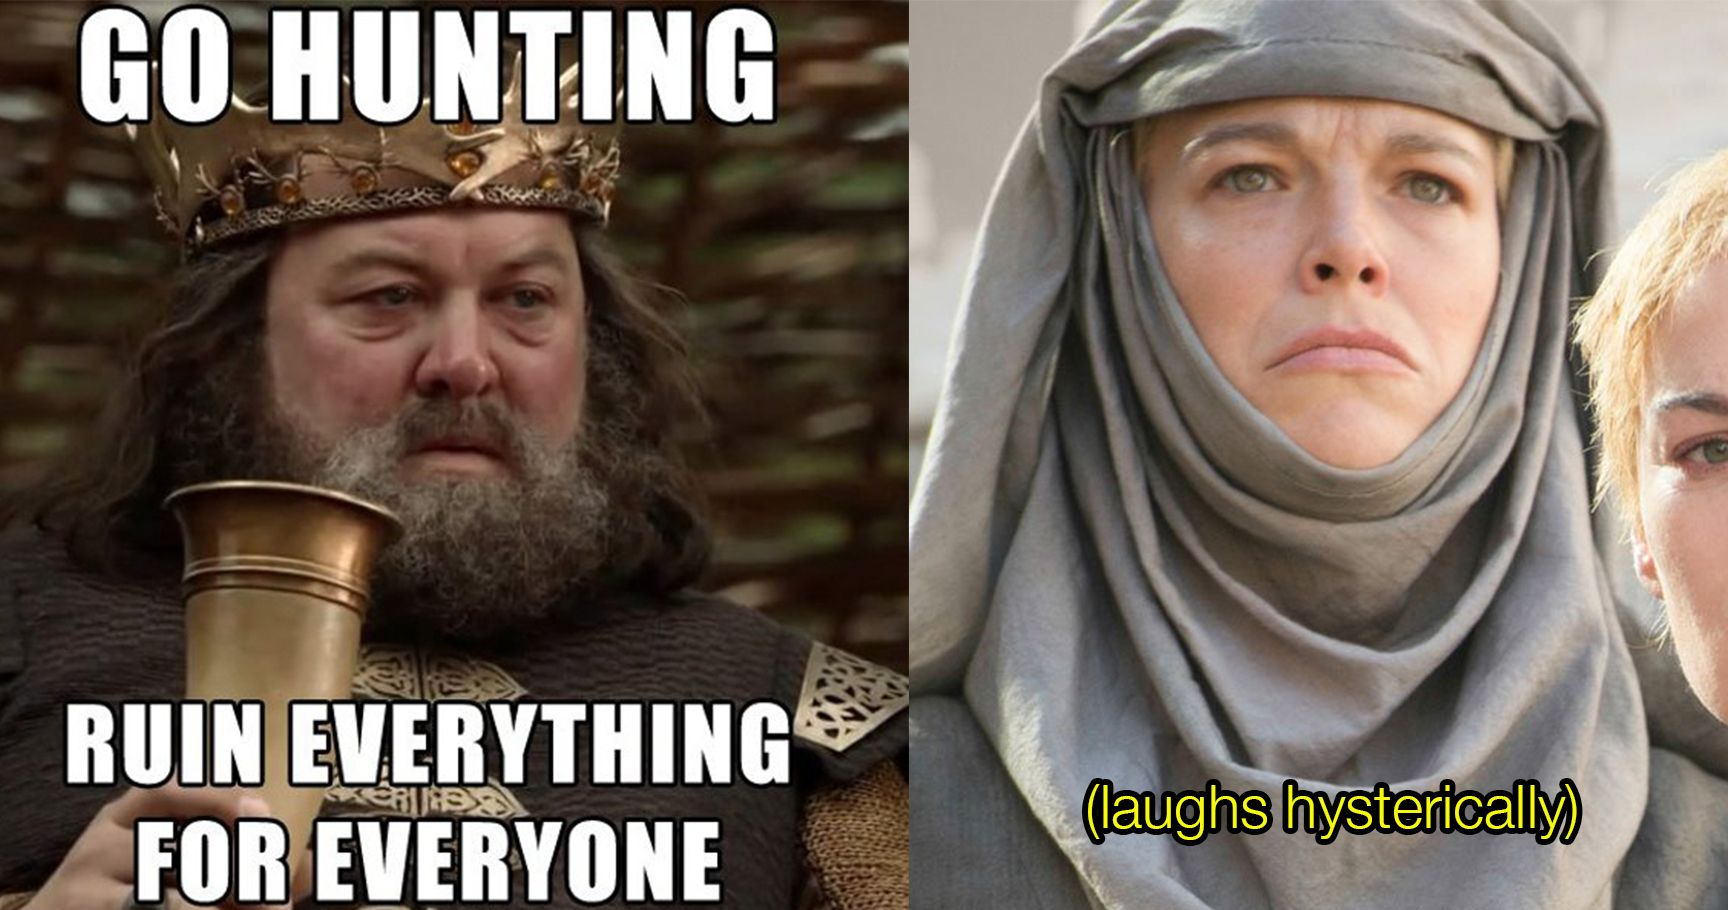 15 'Game Of Thrones' Memes That Will Make Even Septa Unella Laugh